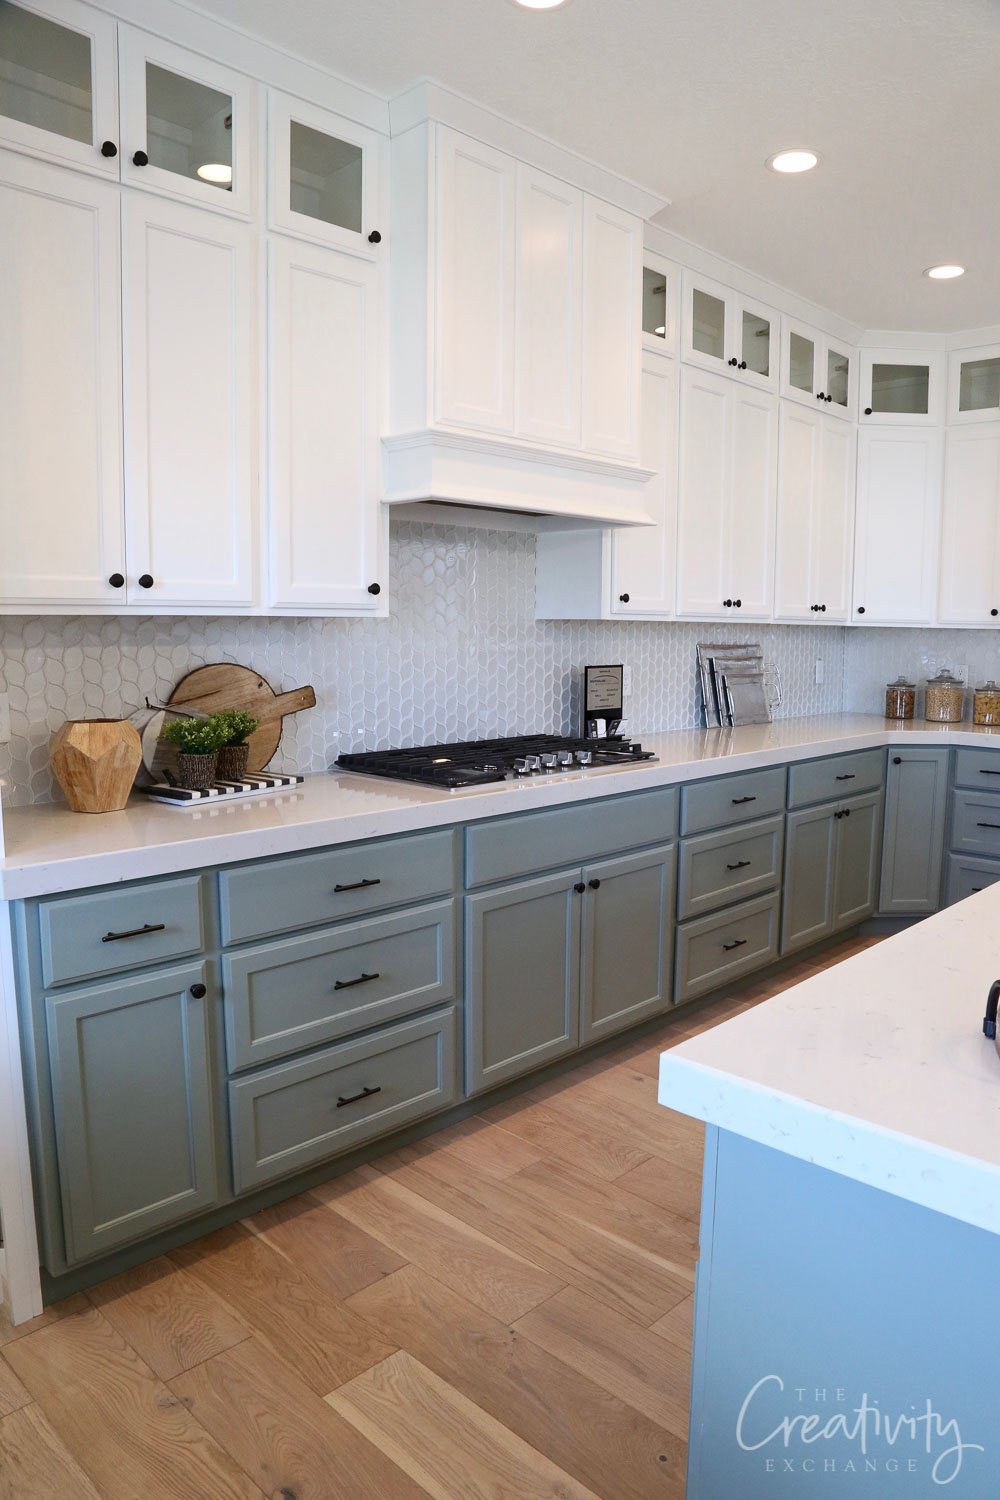 Lower cabinet paint color is Sherwin Williams Acacia Haze